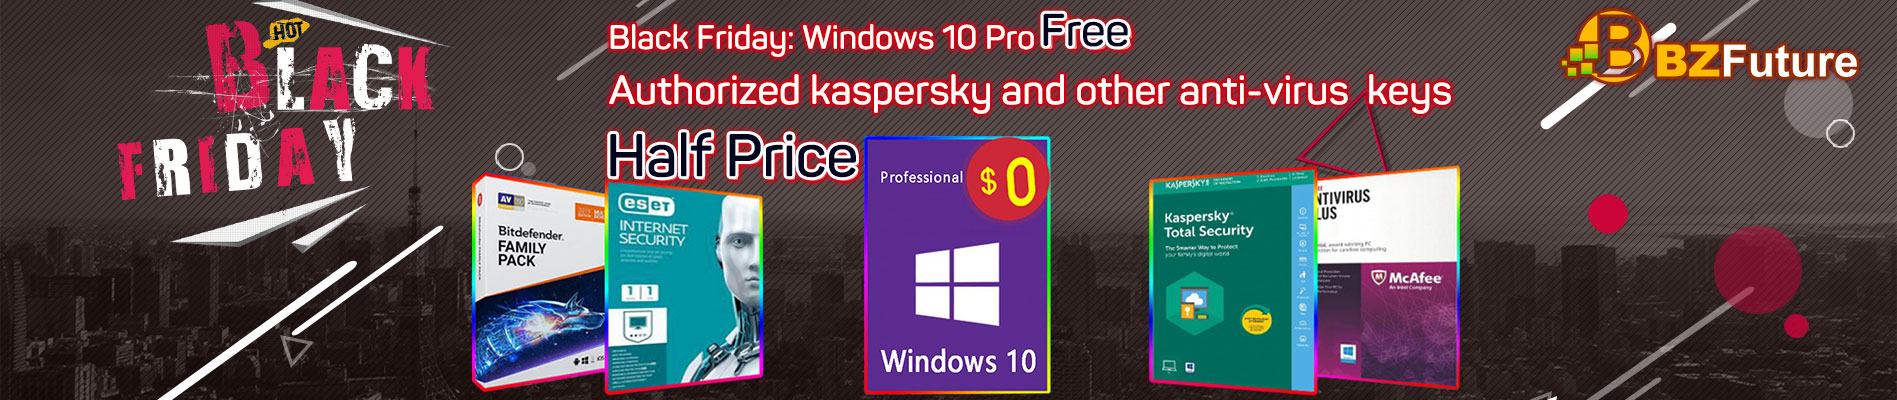 BZFUTURE Sale windows 10 pro oem free